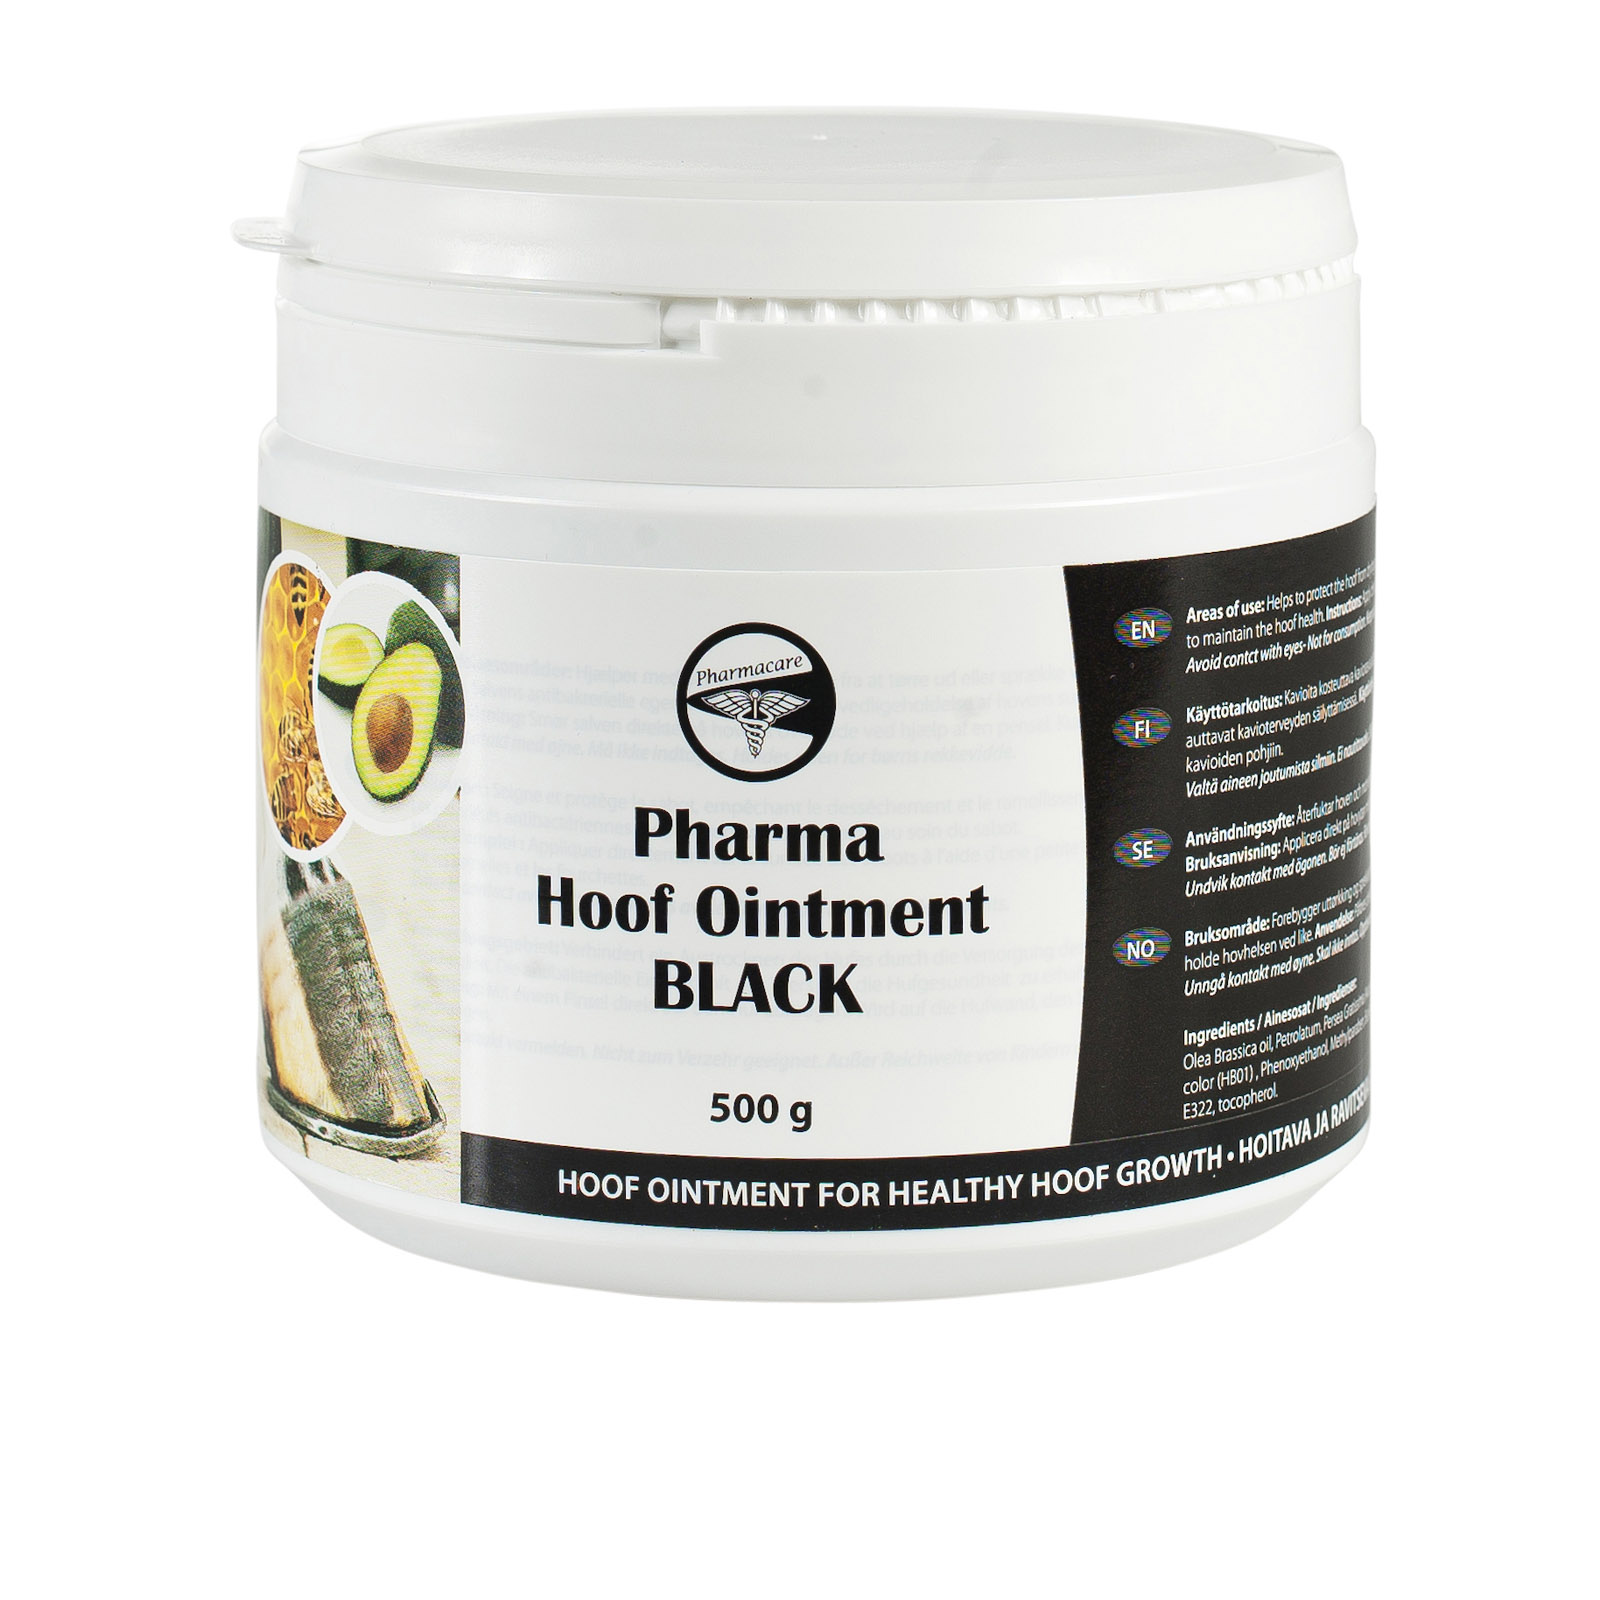 Pharma Hoof Ointment Black 500g